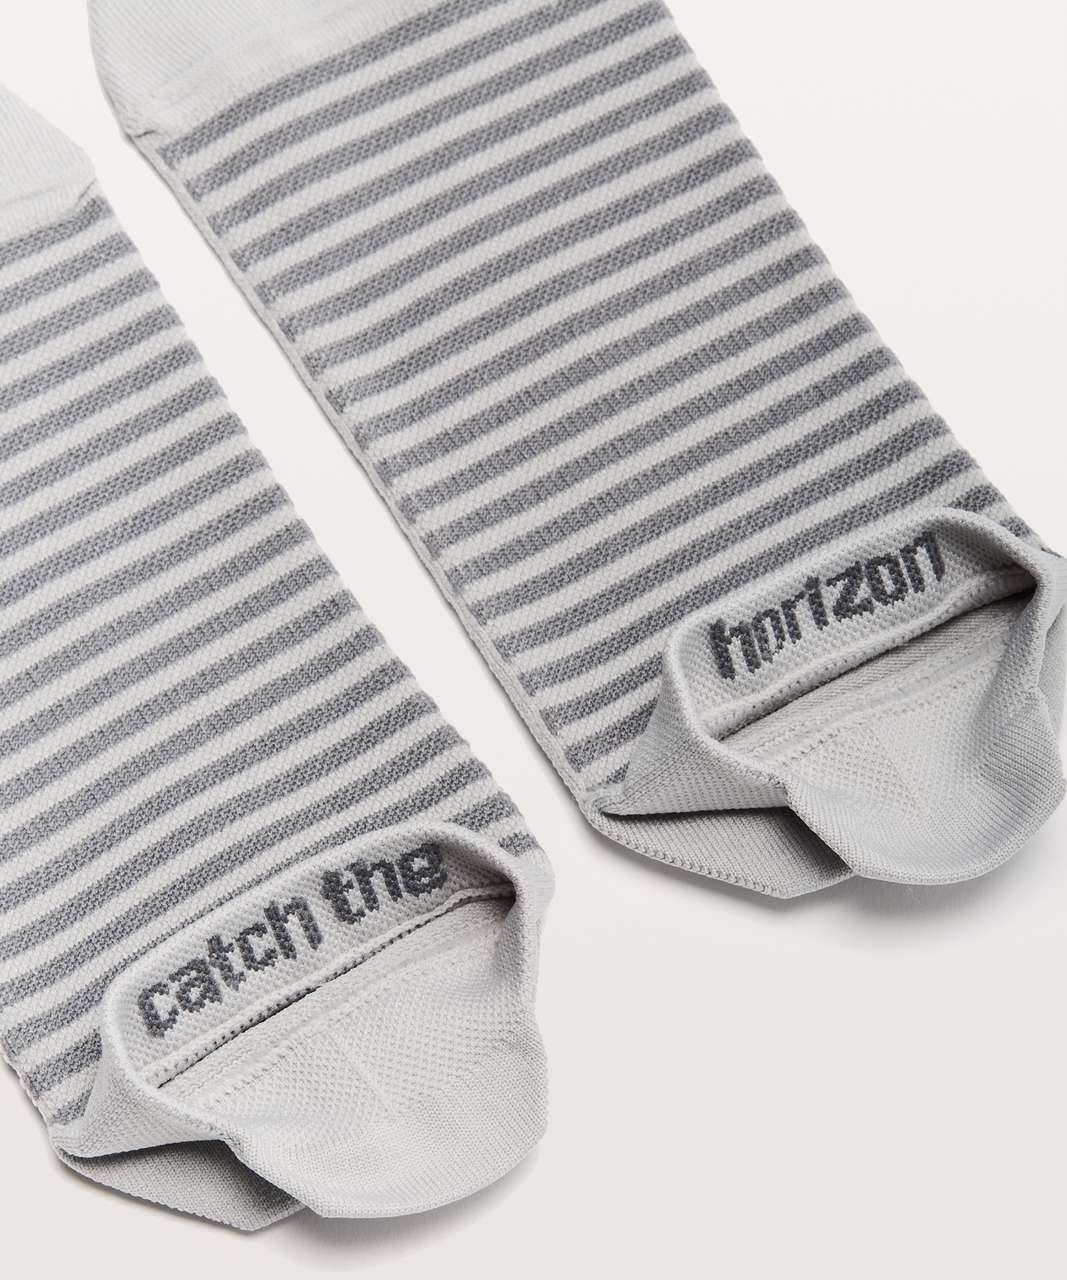 Lululemon Light Speed Sock *Silver - Sea Salt / Asphalt Grey